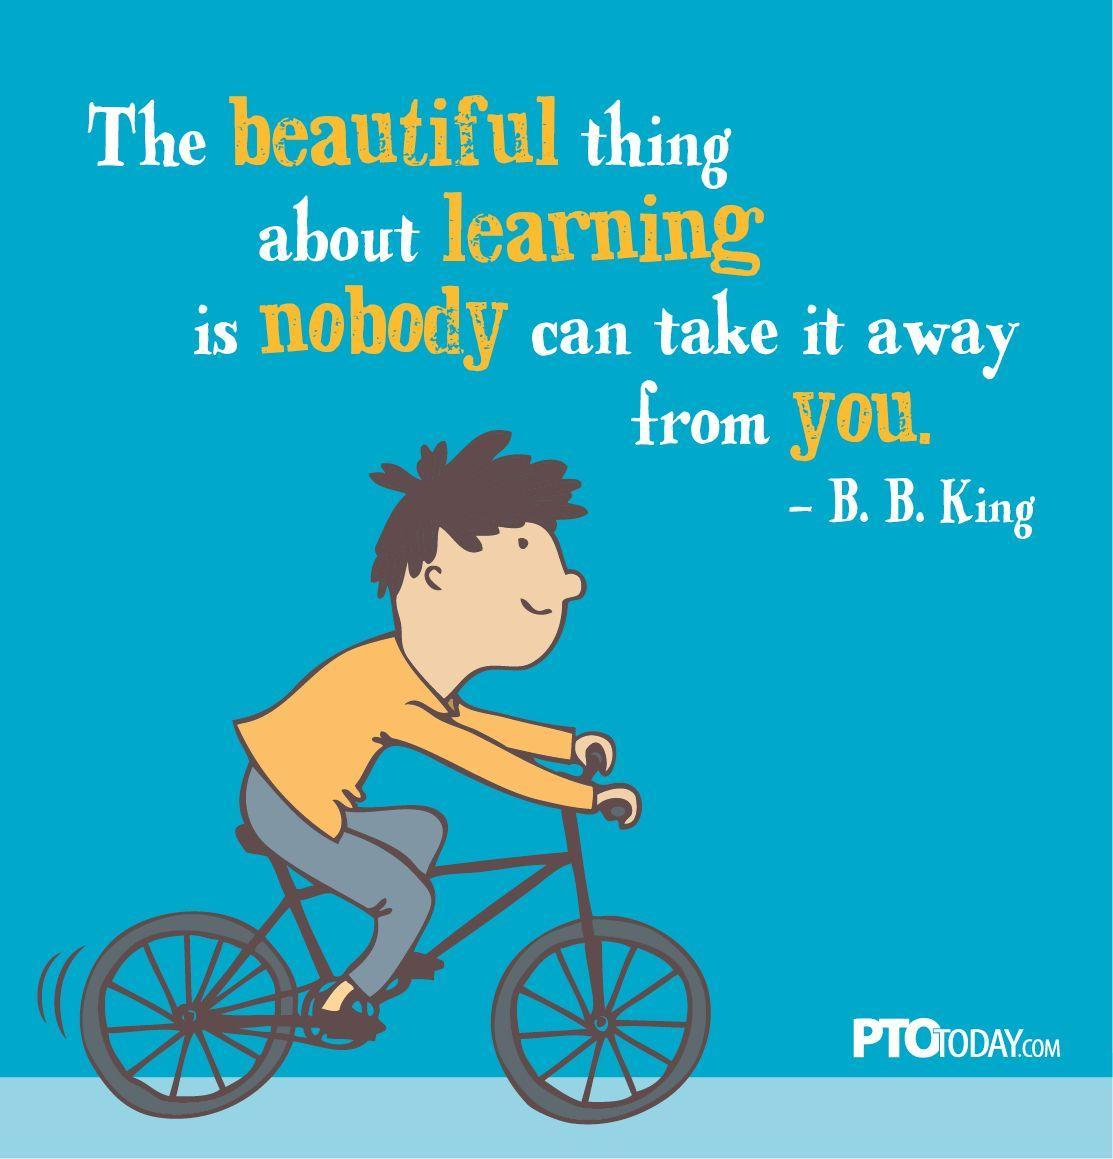 The beautiful thing about learning is that nobody can take it away from you.